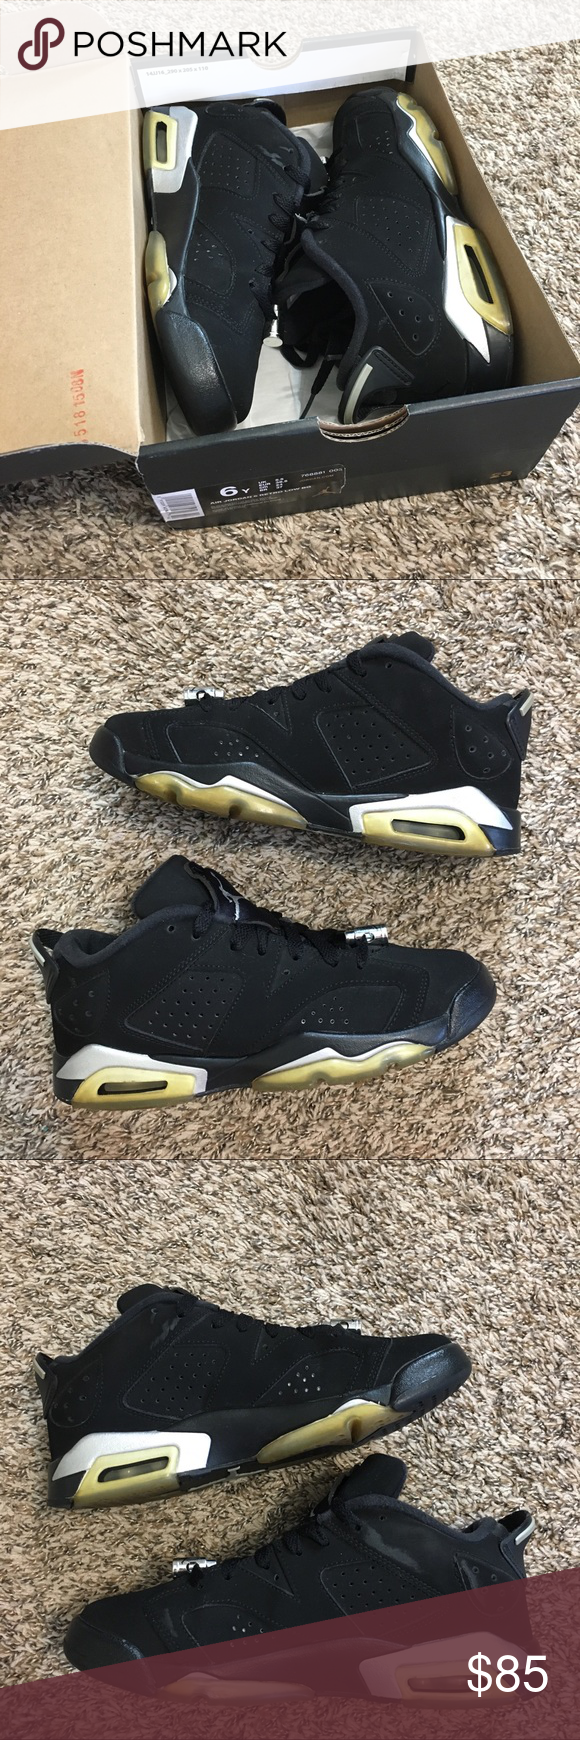 check out 9091f 93b7f Air Jordan Retro 6 Low Chrome Metallic Sneaker Air Jordan Retro 6 Low  Chrome Silver Black Metallic Basketball Sneaker Size 6Y Good condition has  some scuffs ...